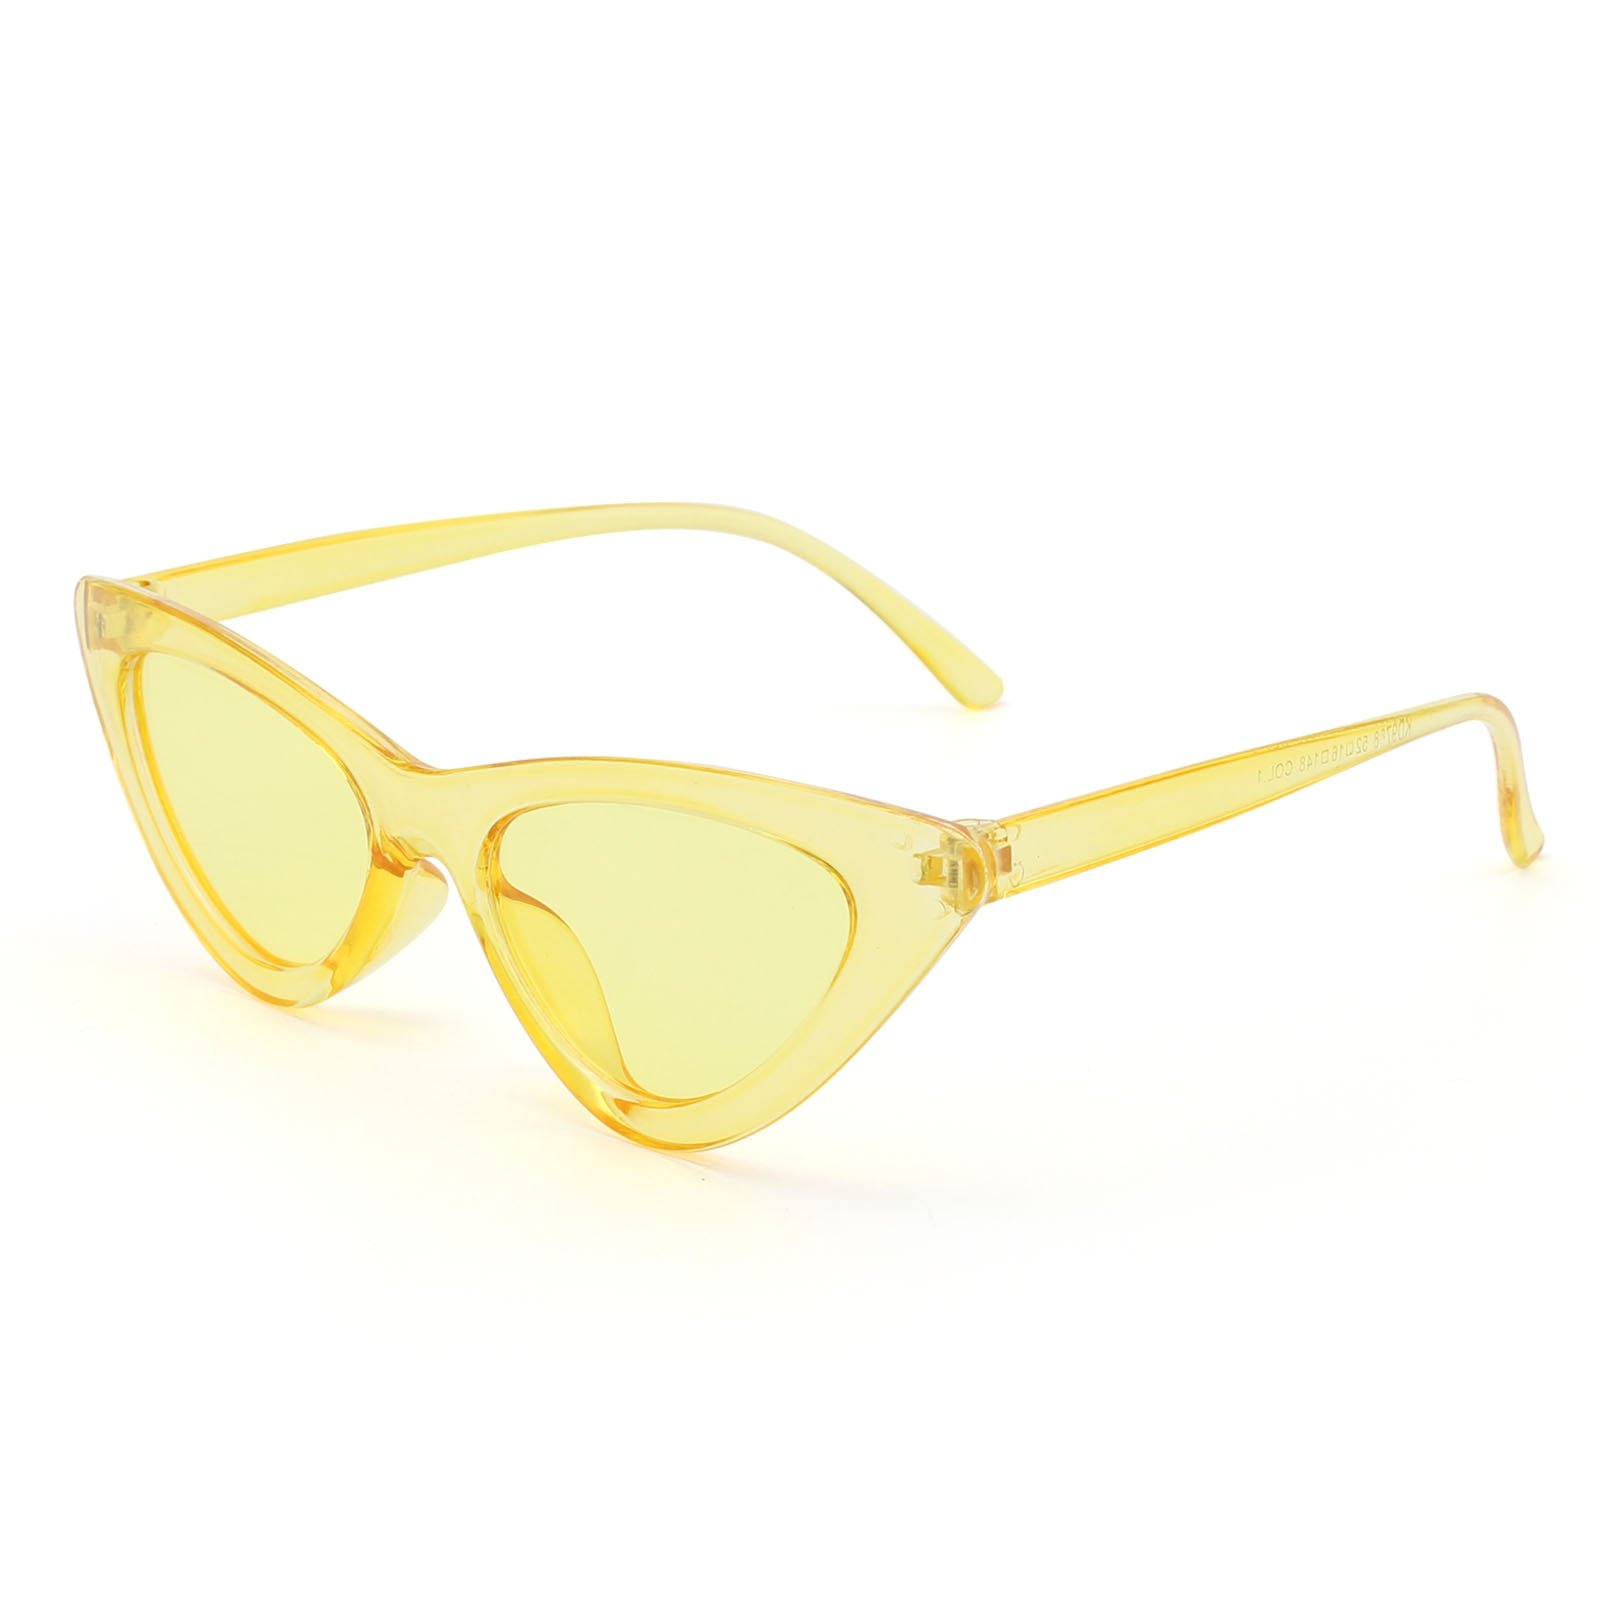 Livhò Retro Vintage Narrow Cat Eye Sunglasses for Women Clout Goggles Plastic Frame (Clear yellow/yellow)